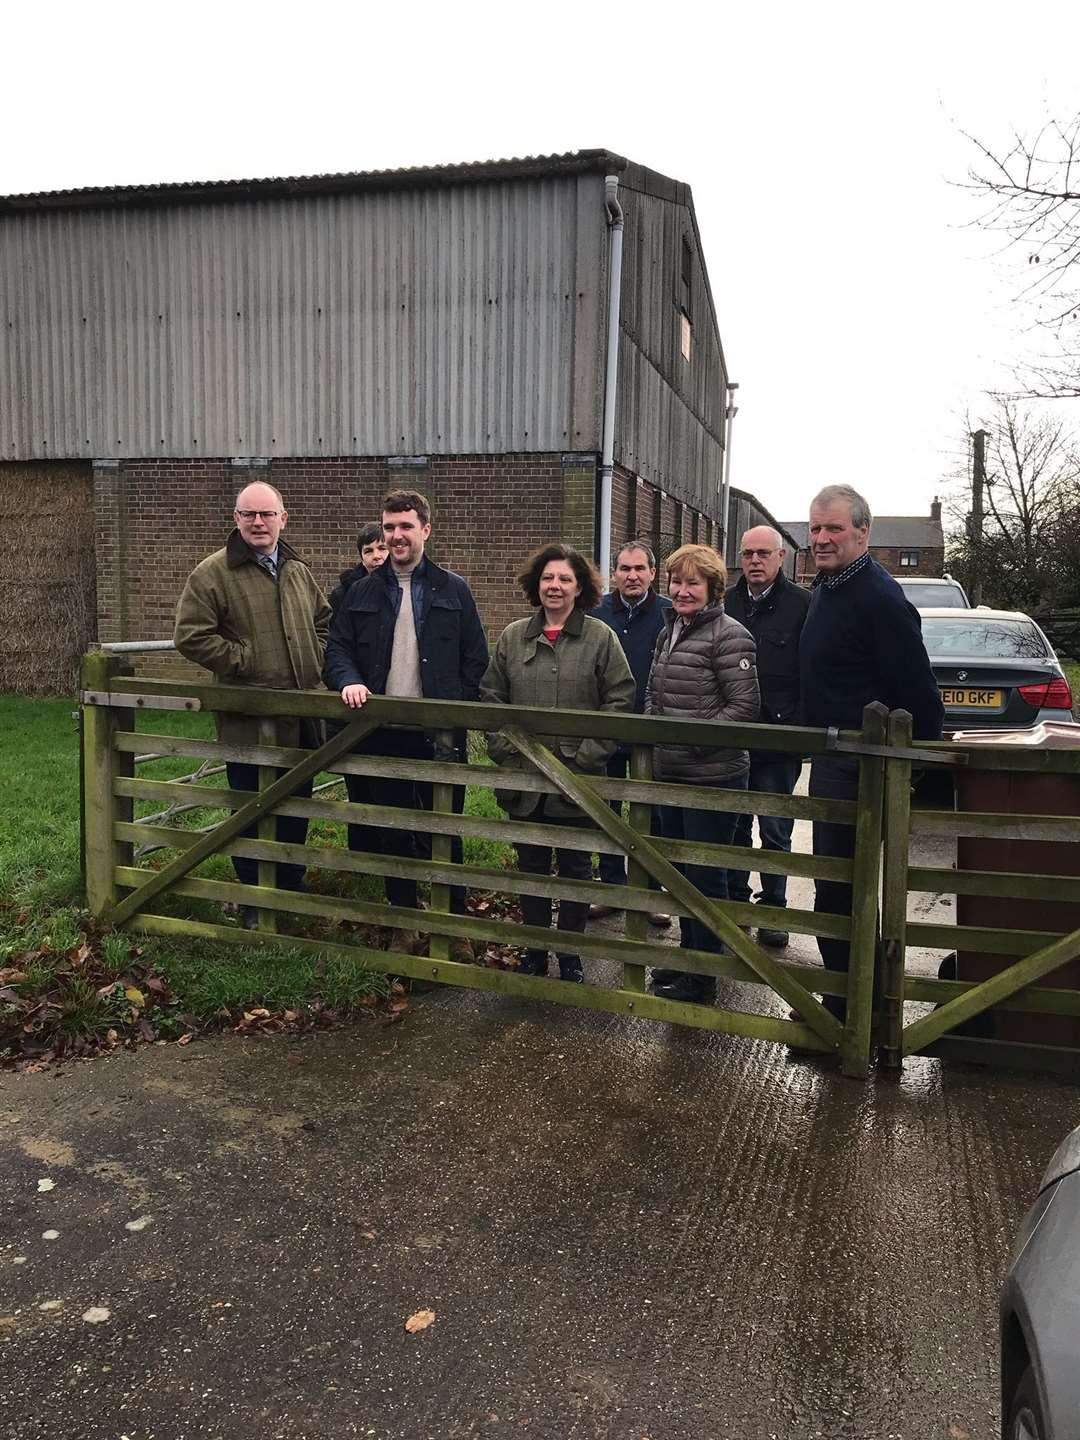 James Baggaley meets members of the NFU. (22498784)